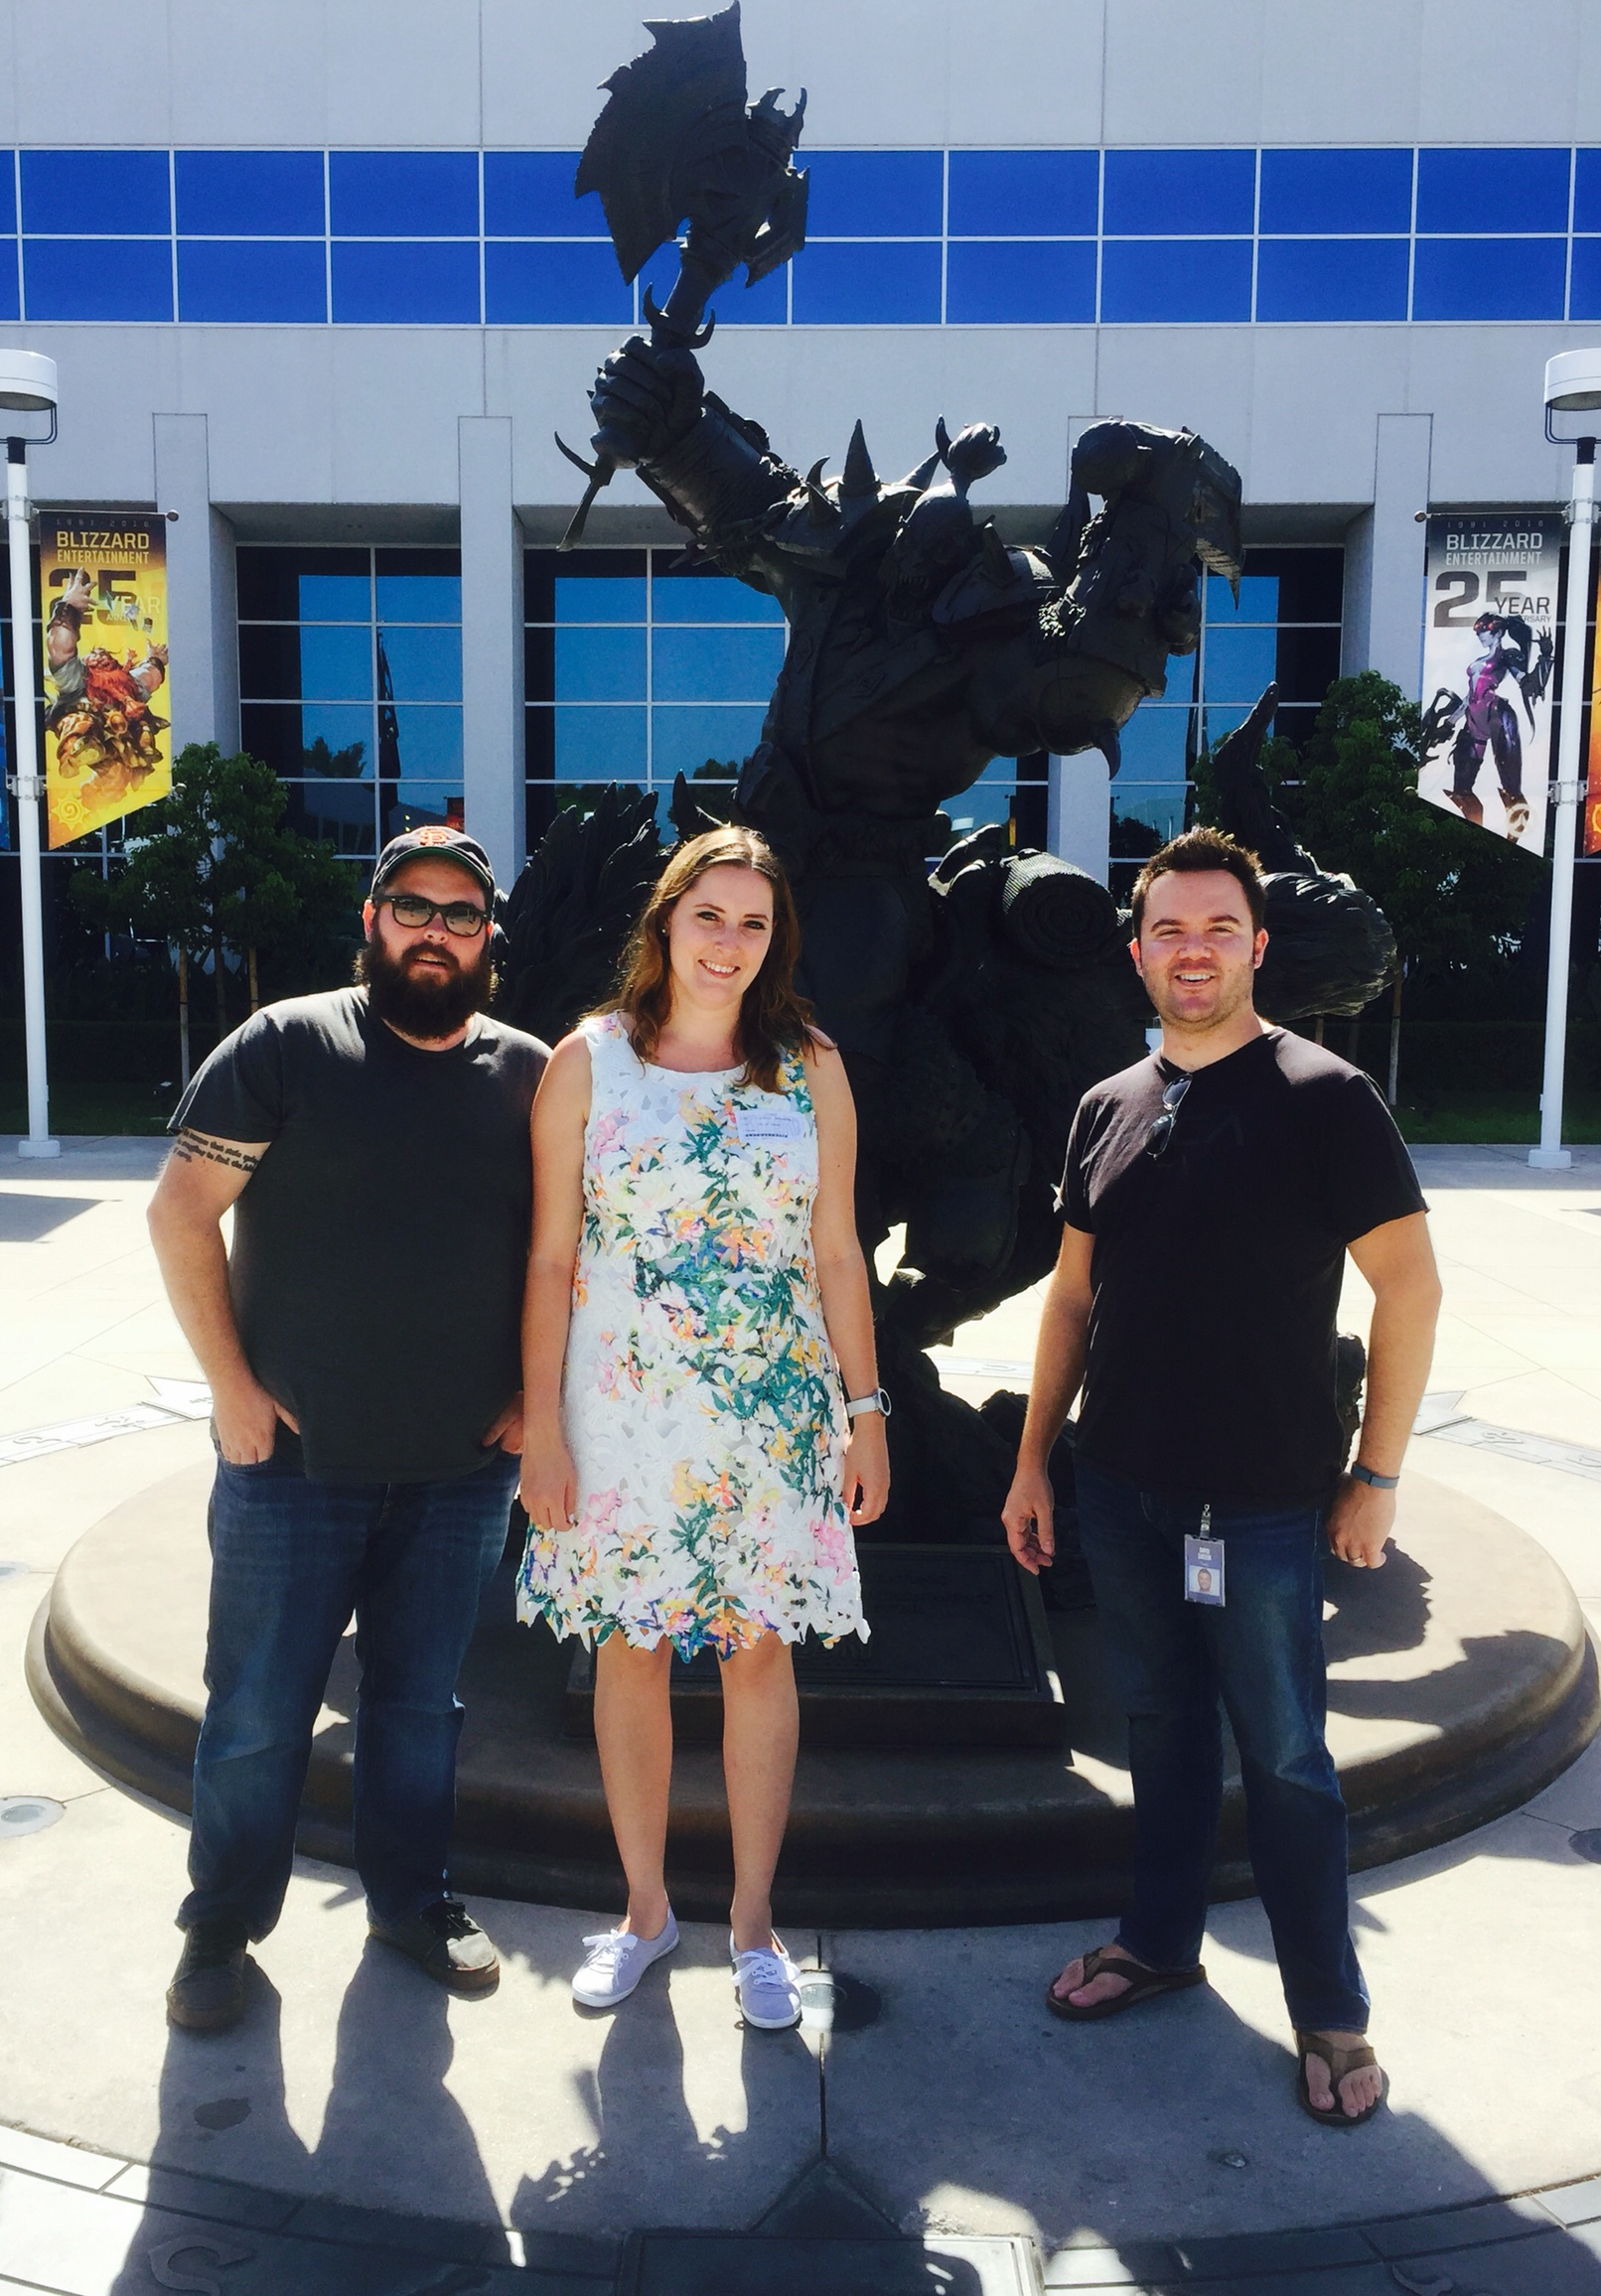 Carin at Blizzard Entertainment